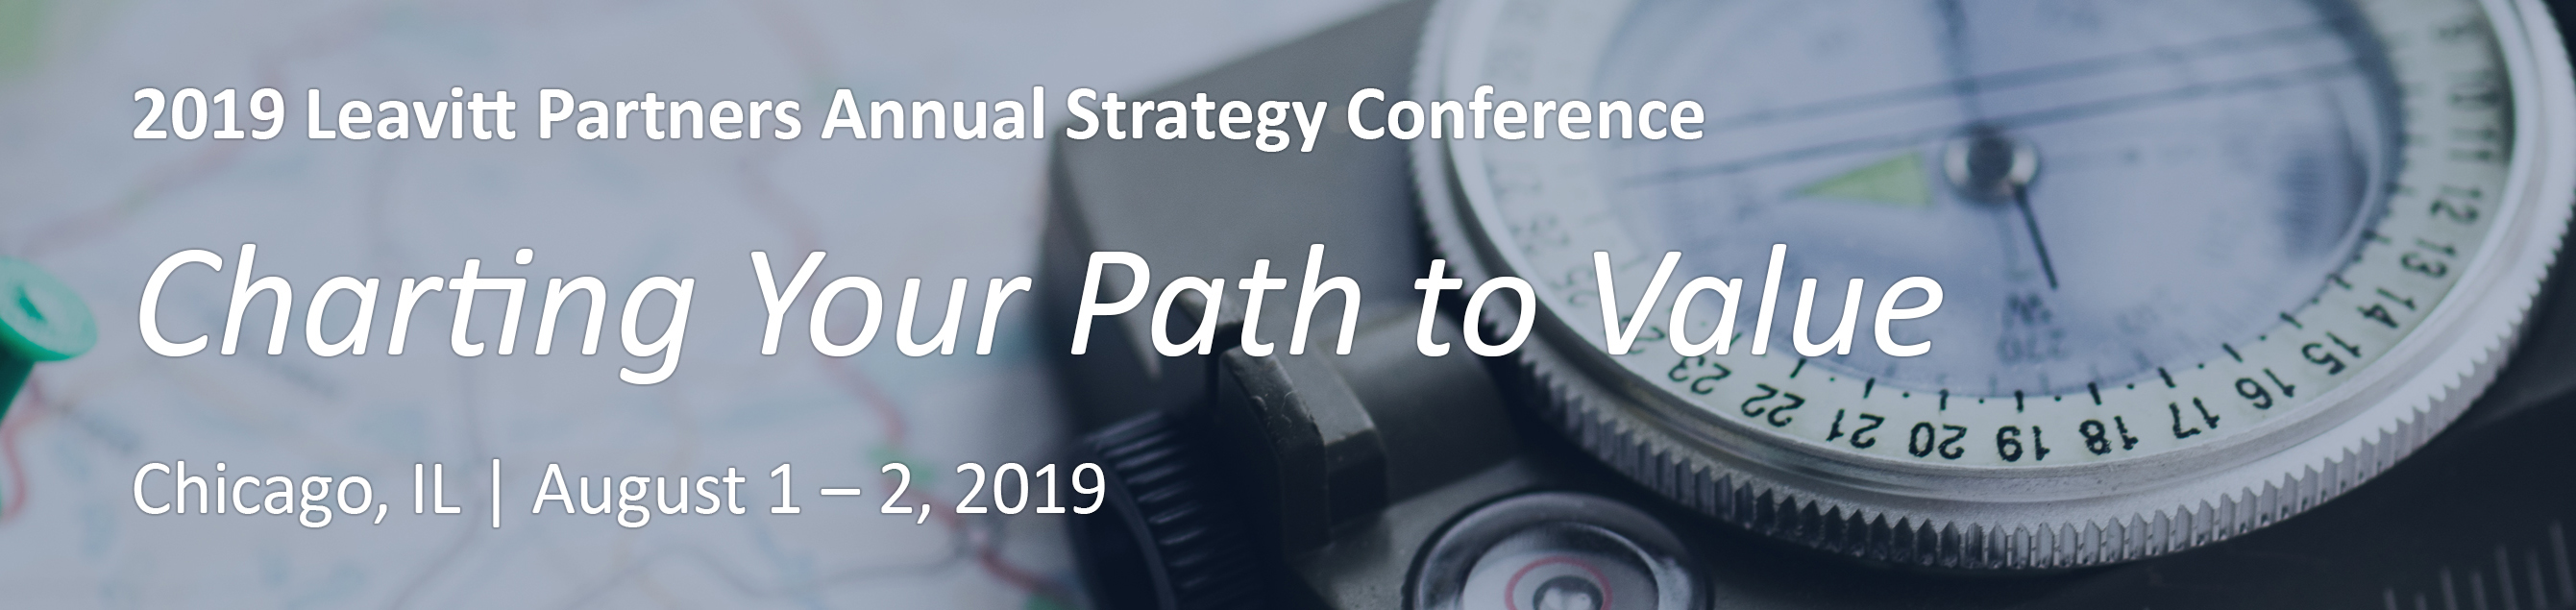 2019 Leavitt Partners Annual Strategy Conference